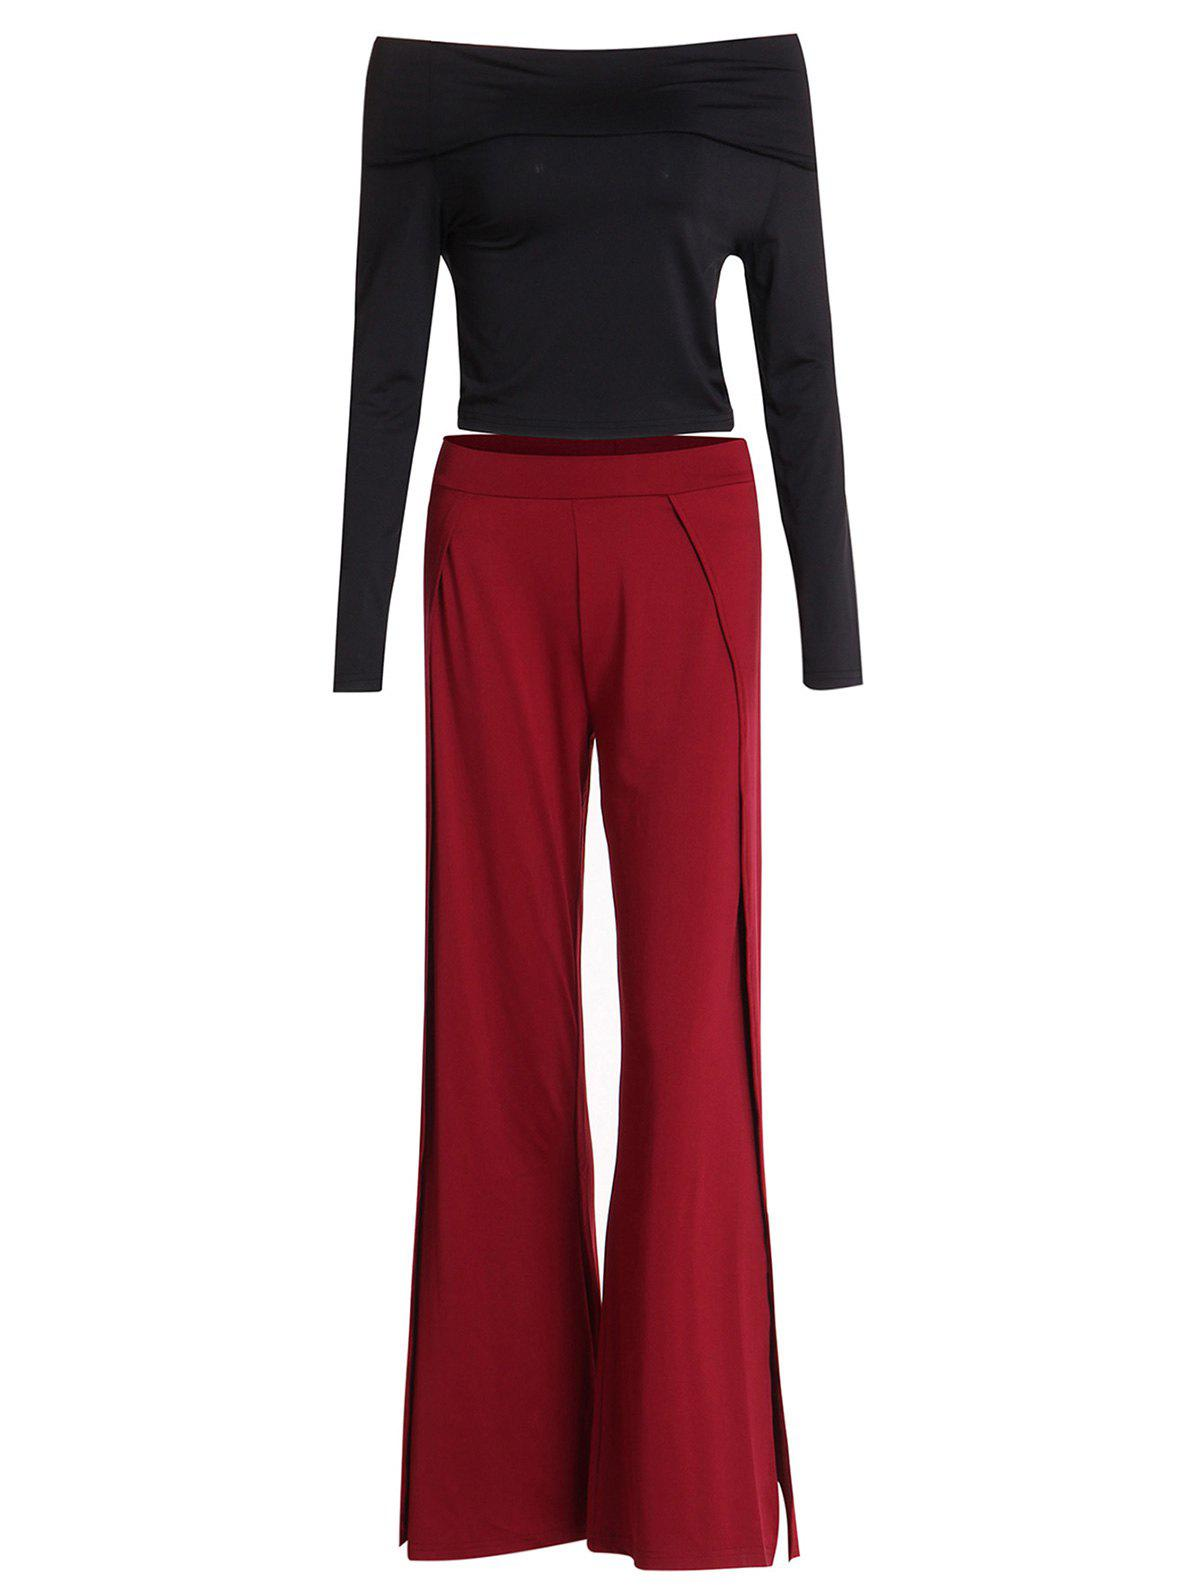 Chic Black Off-The-Shoulder Cropped T-Shirt and Slit Pants Twinset For Women - WINE RED L